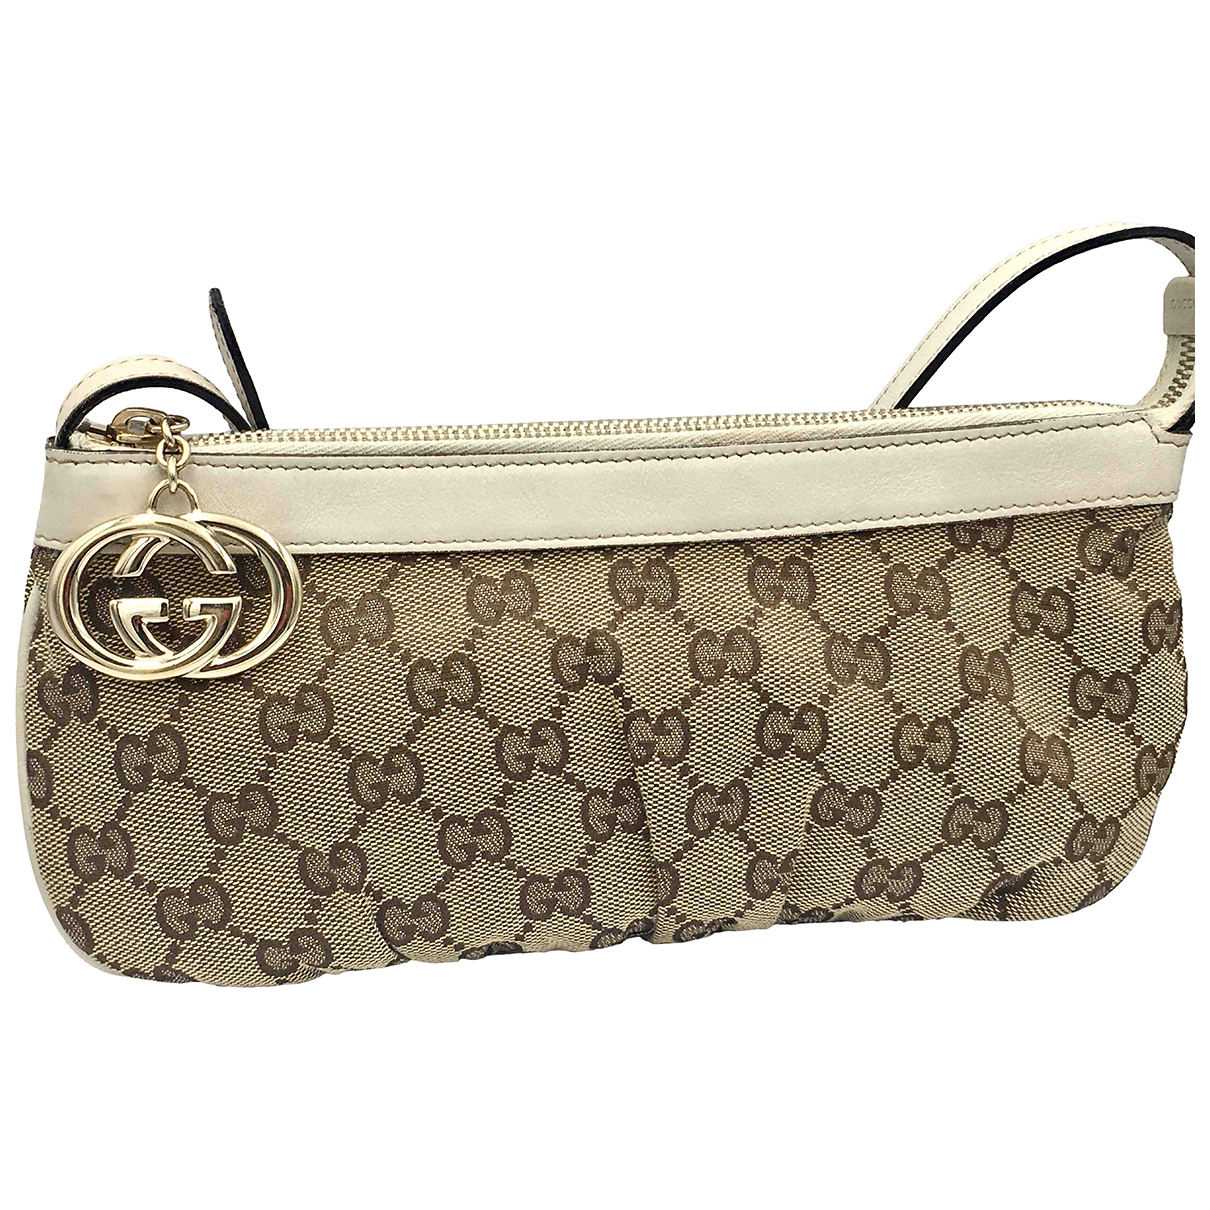 Gucci N Beige Cotton handbag for Women N